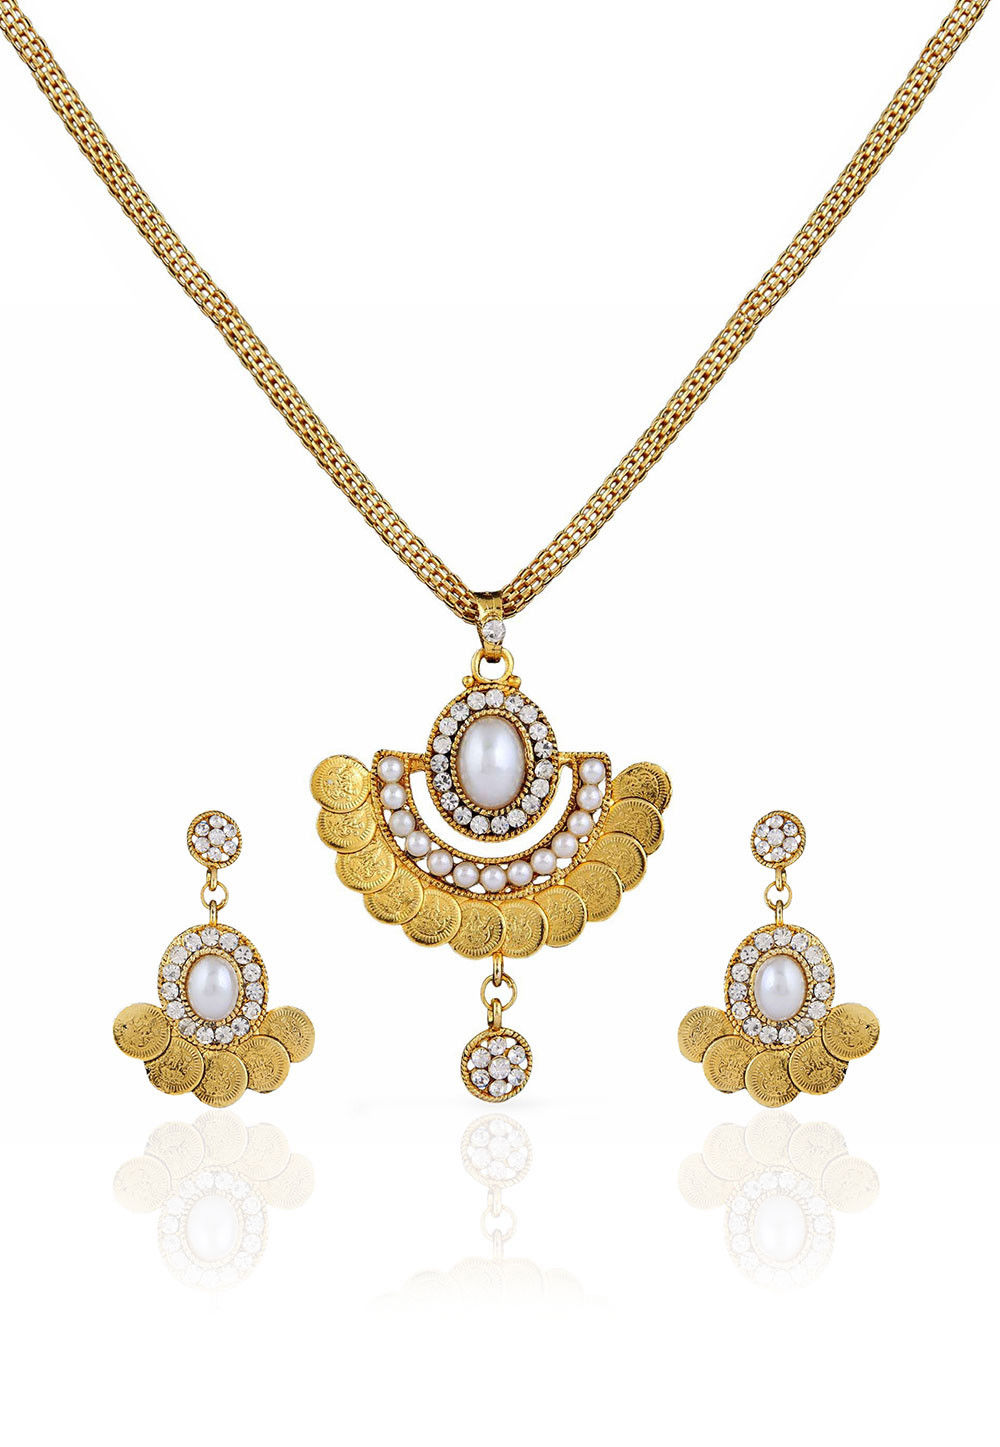 Stone Studded Pendant Set in Golden and White